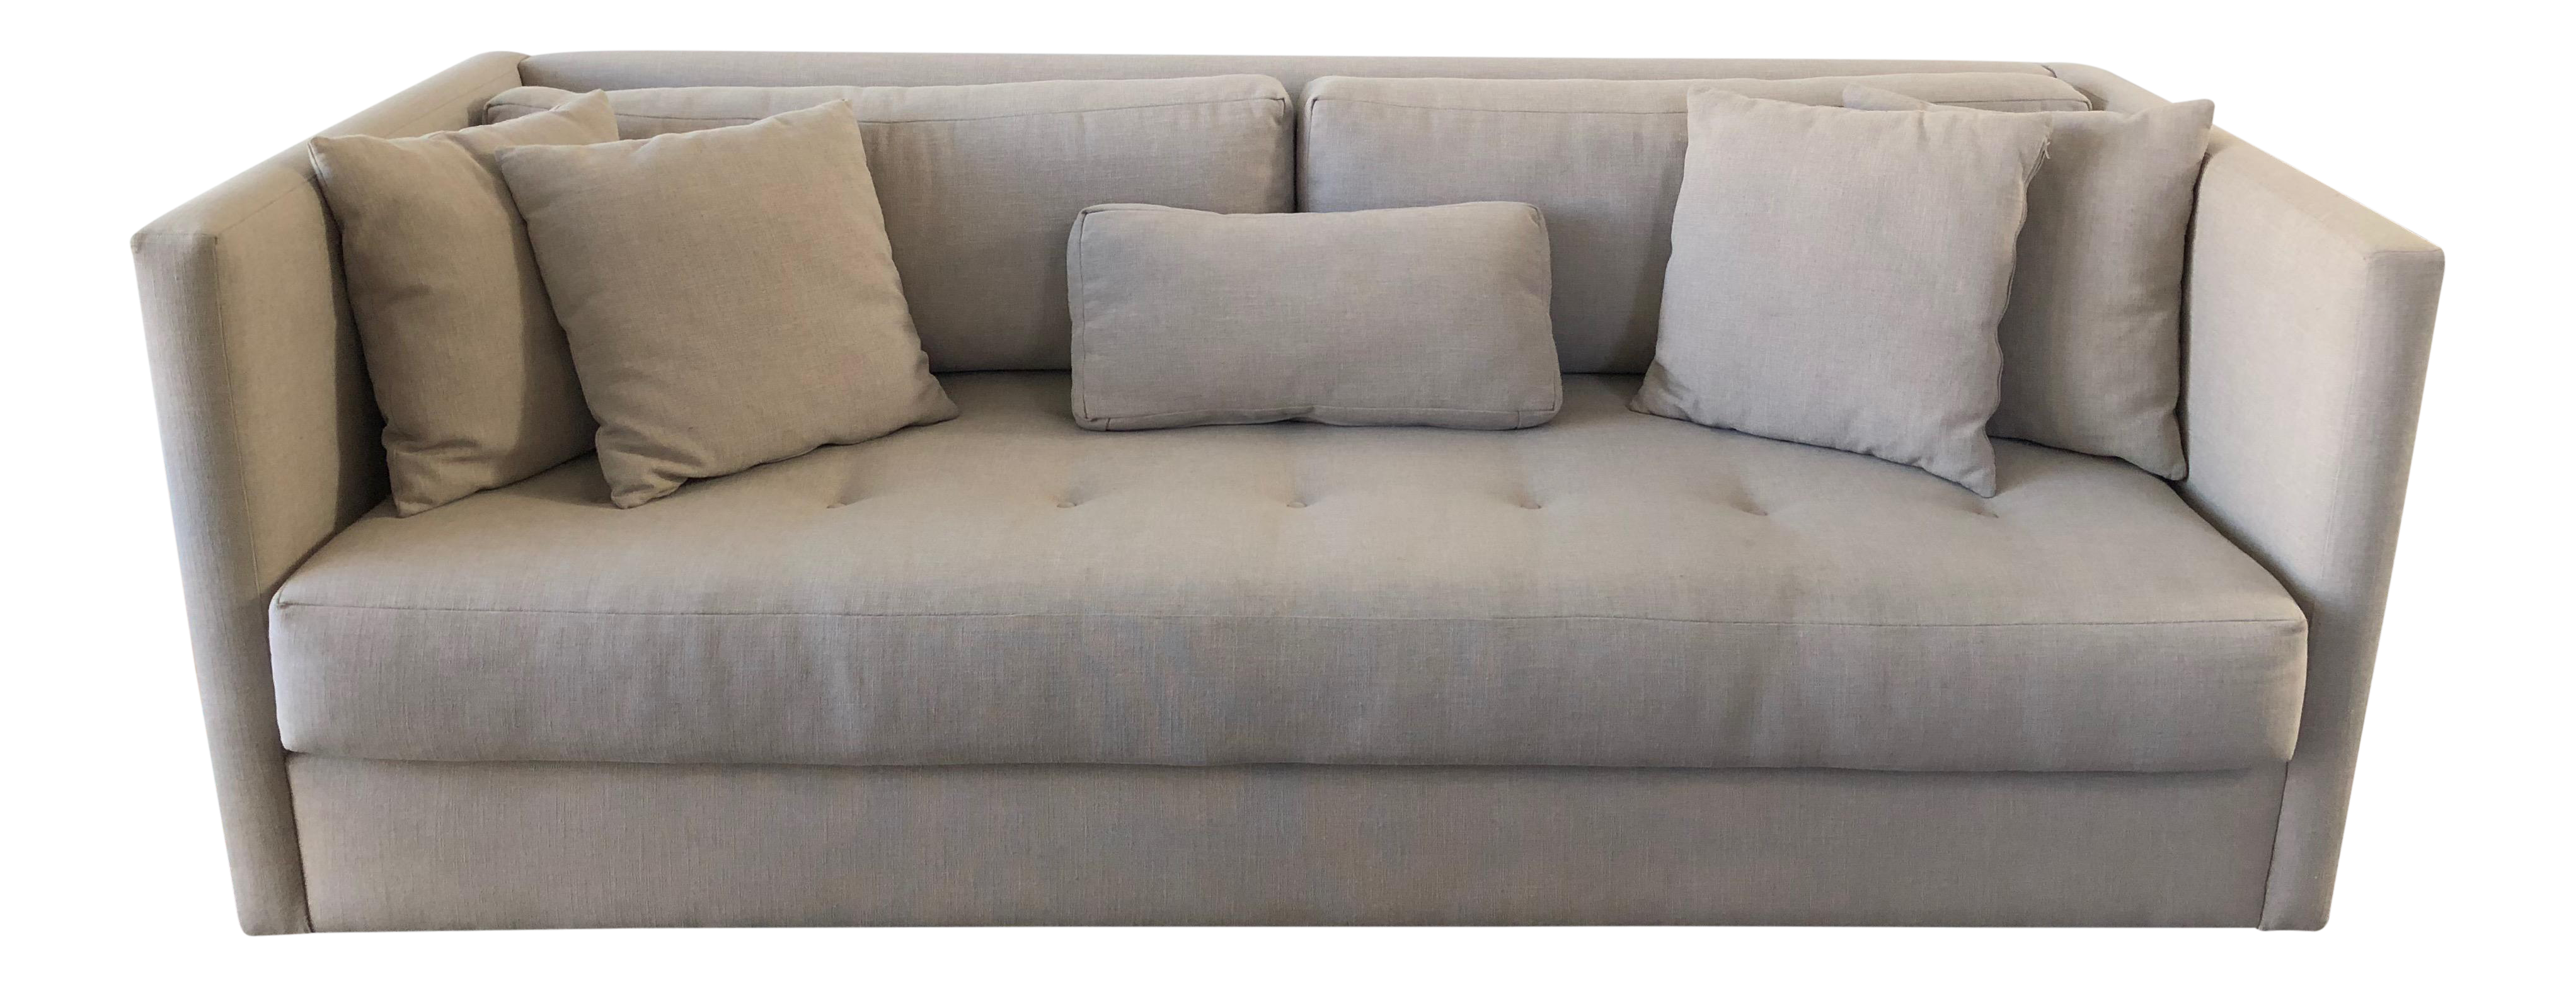 HD Buttercup Gray Linen Aria Sofa